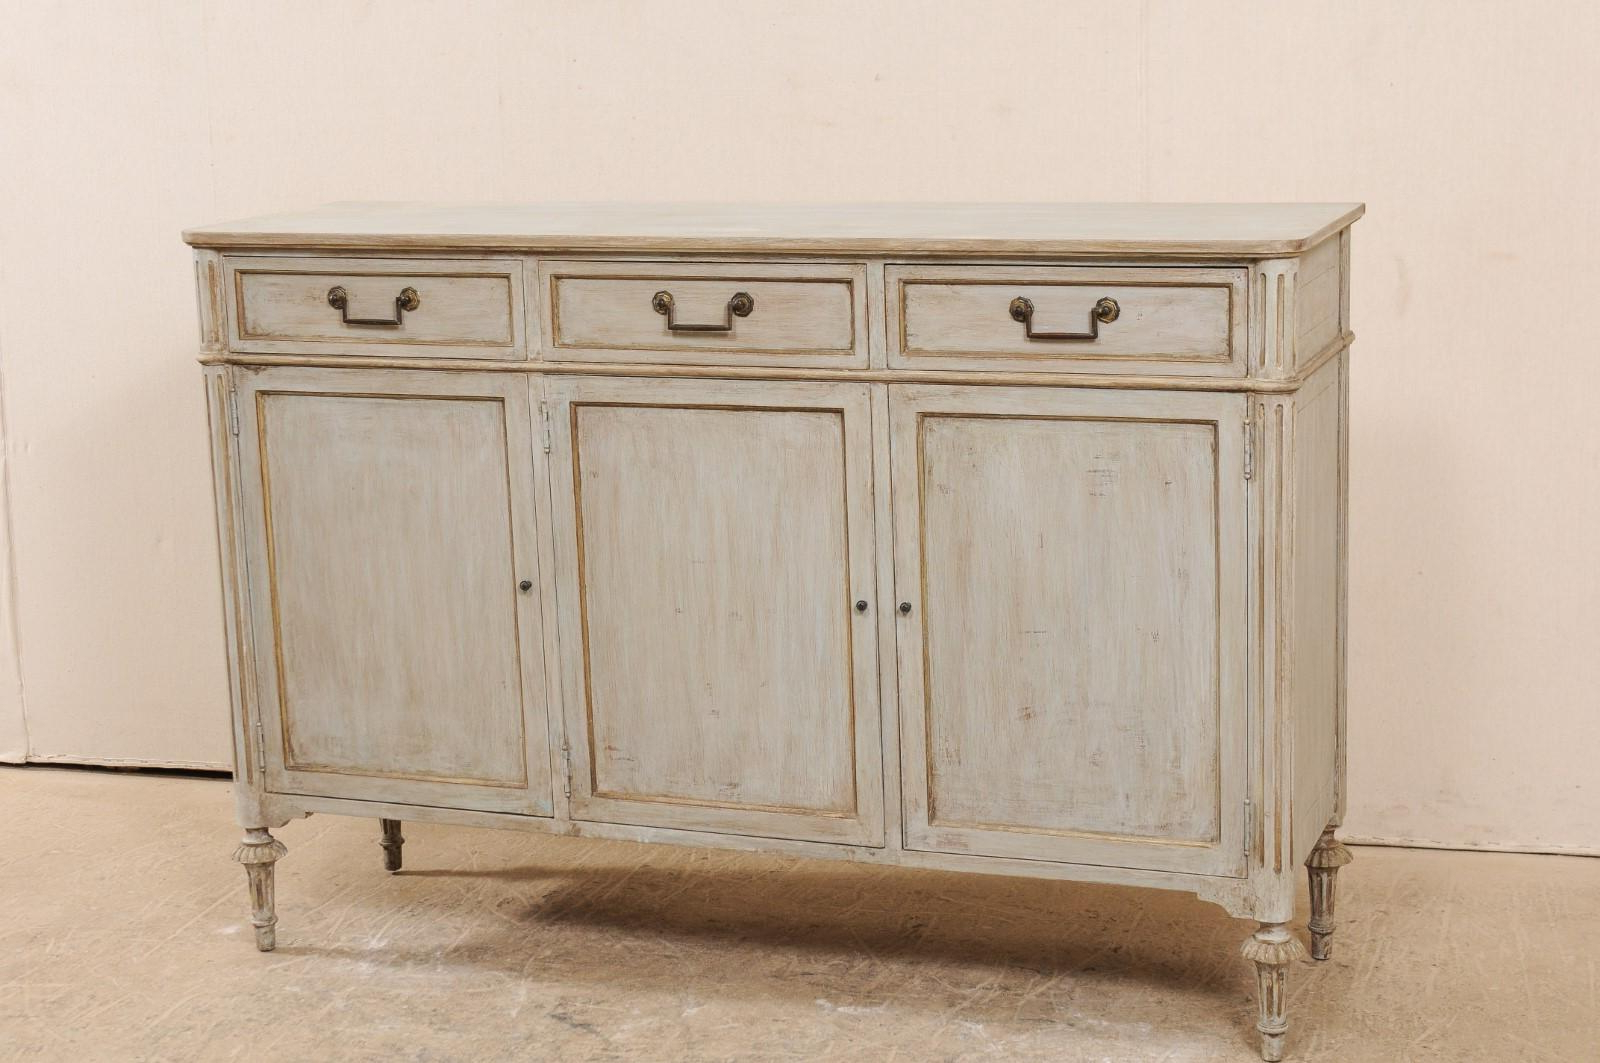 Lovely French Painted Wood Buffet Cabinet From The Mid 20Th Century With Regard To Mid Century 3 Cabinet Buffets (View 11 of 20)